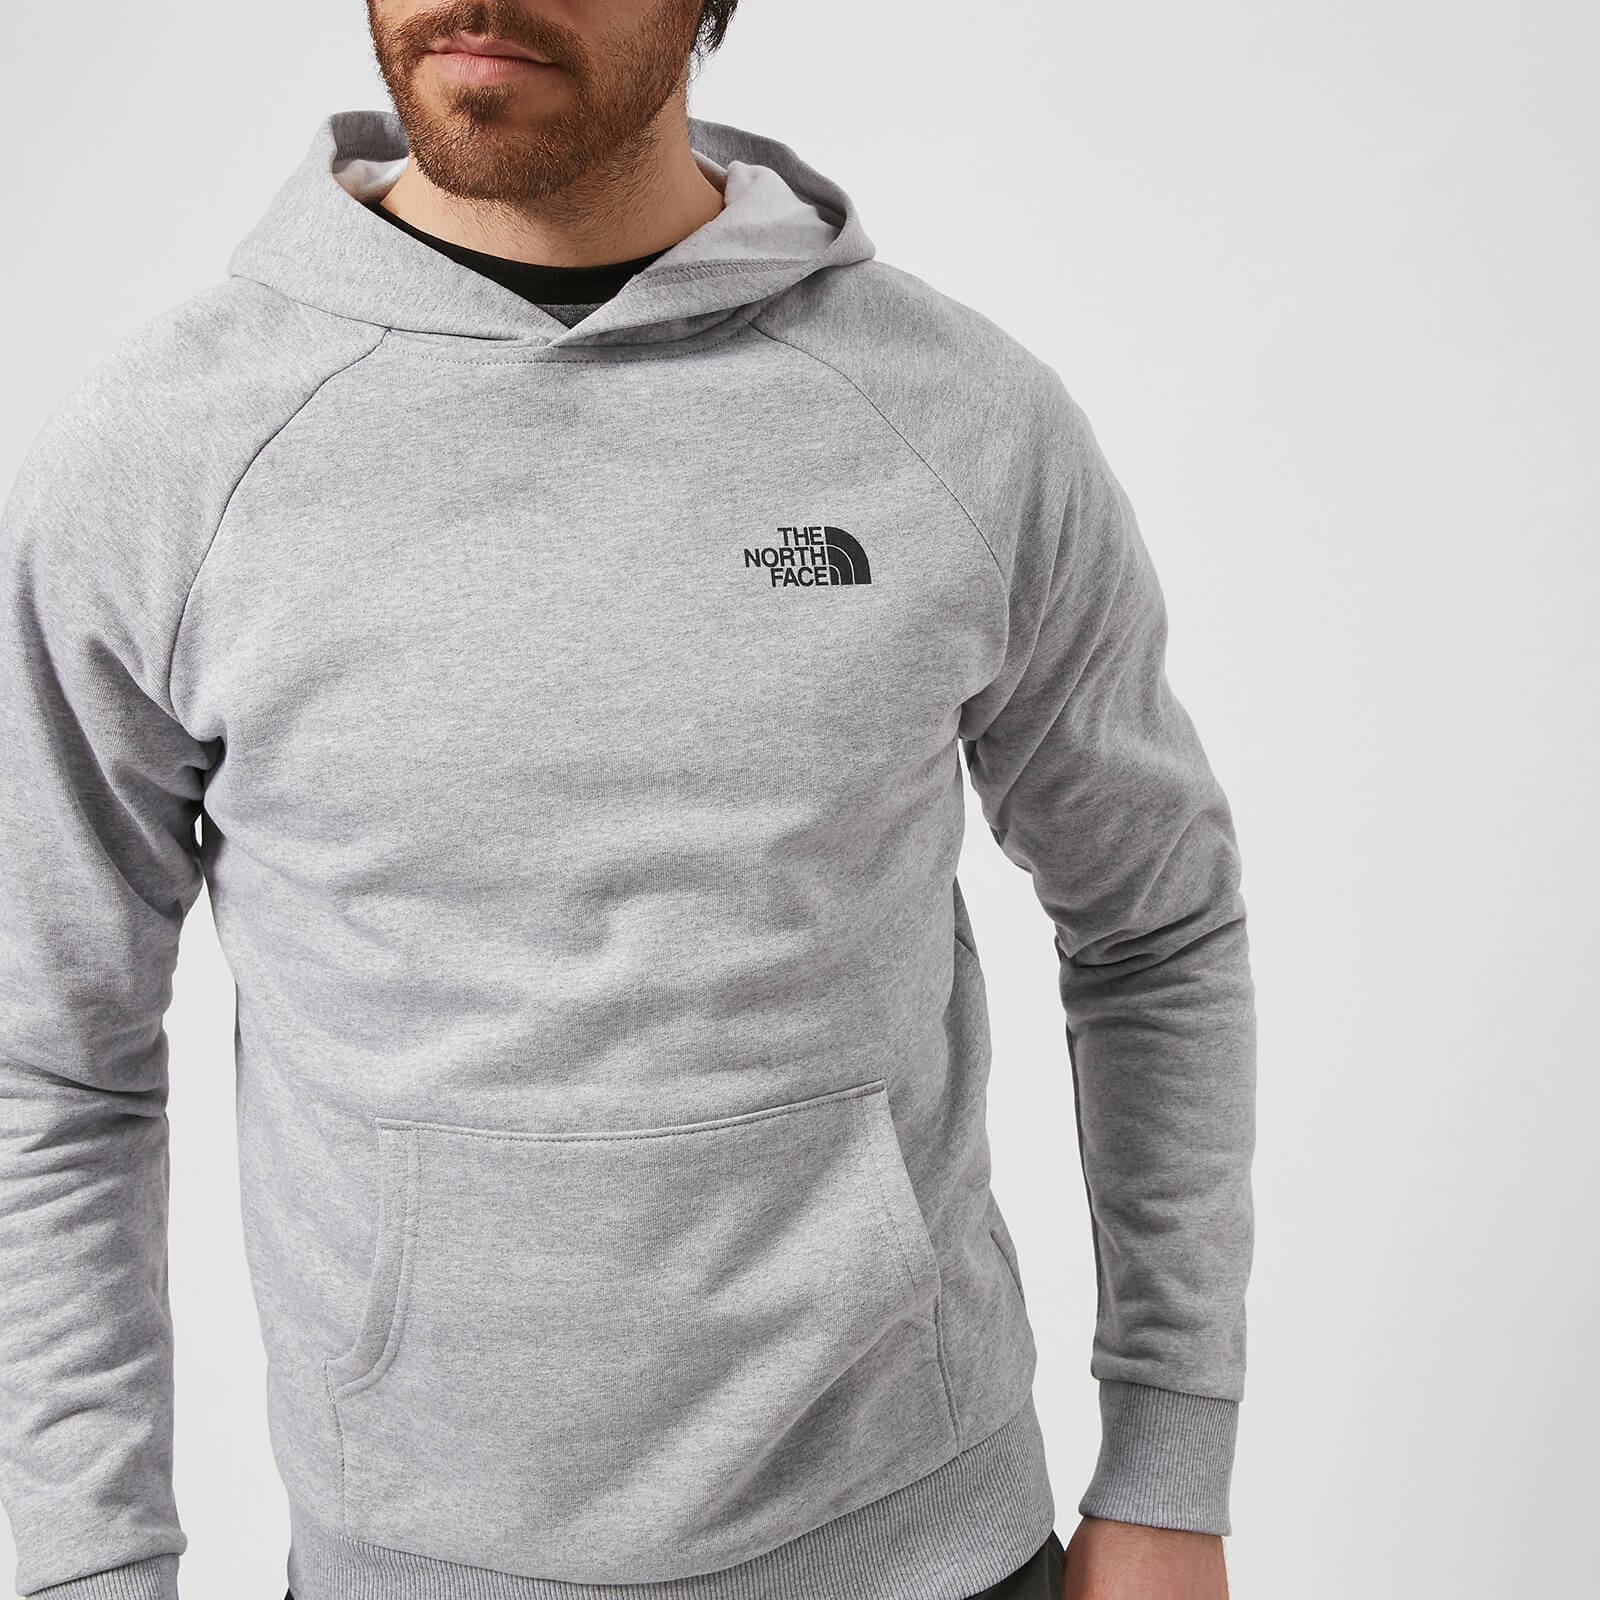 f951ef974 The North Face Men's Raglan Red Box Hoodie - TNF Light Grey Heather